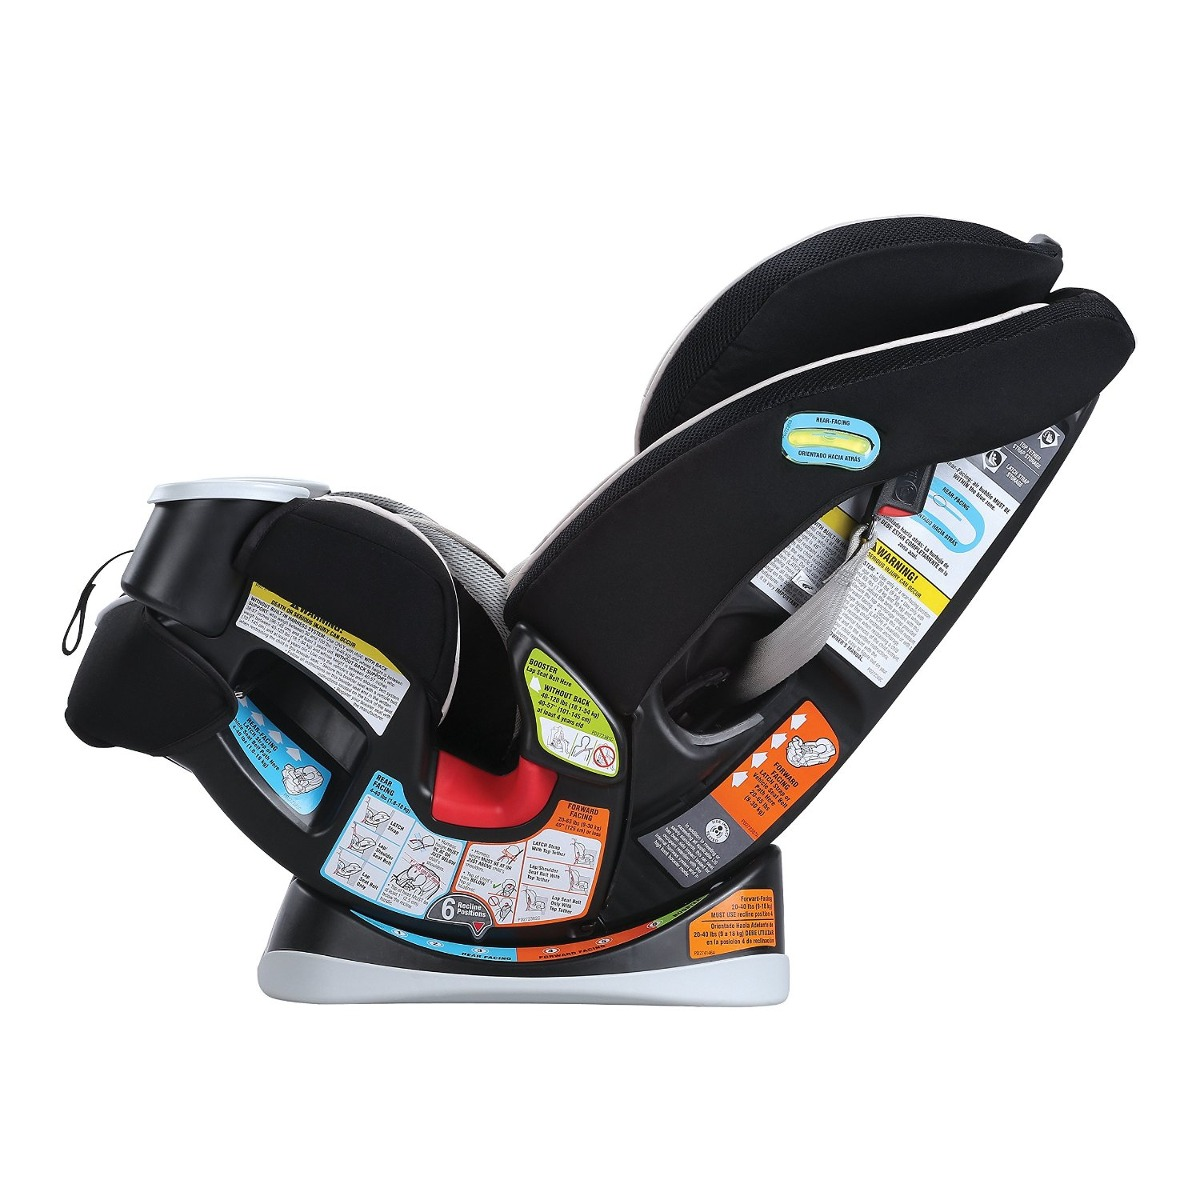 Silla de beb para carro graco 4ever all in one de asiento Sillas de carro para ninos